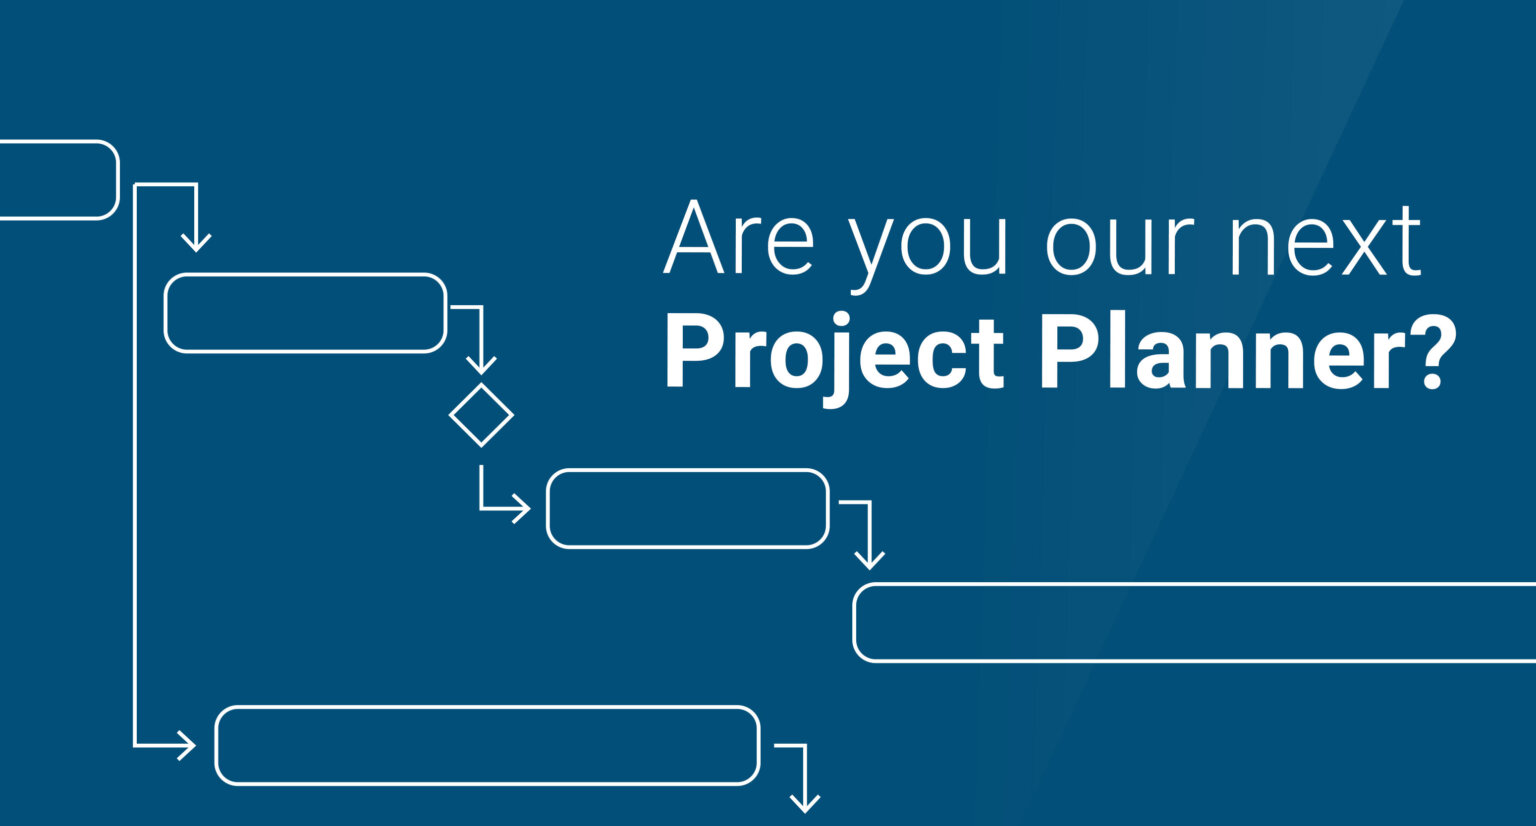 Project Planner for Offshore Wind Projects